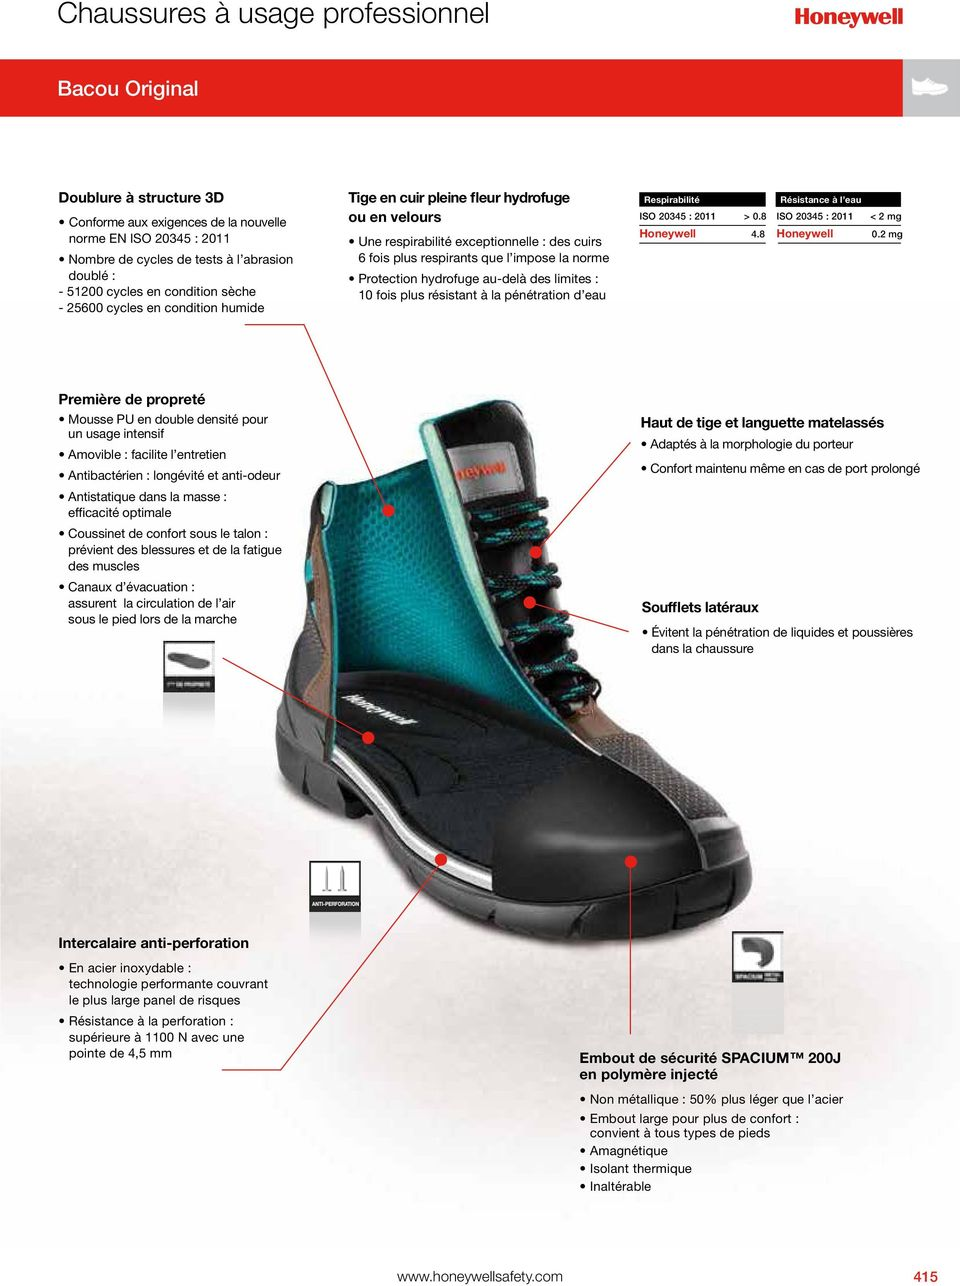 CHAUSSURES %C3%A0 USAGE PROFESSIONNEL Chaussures occasion